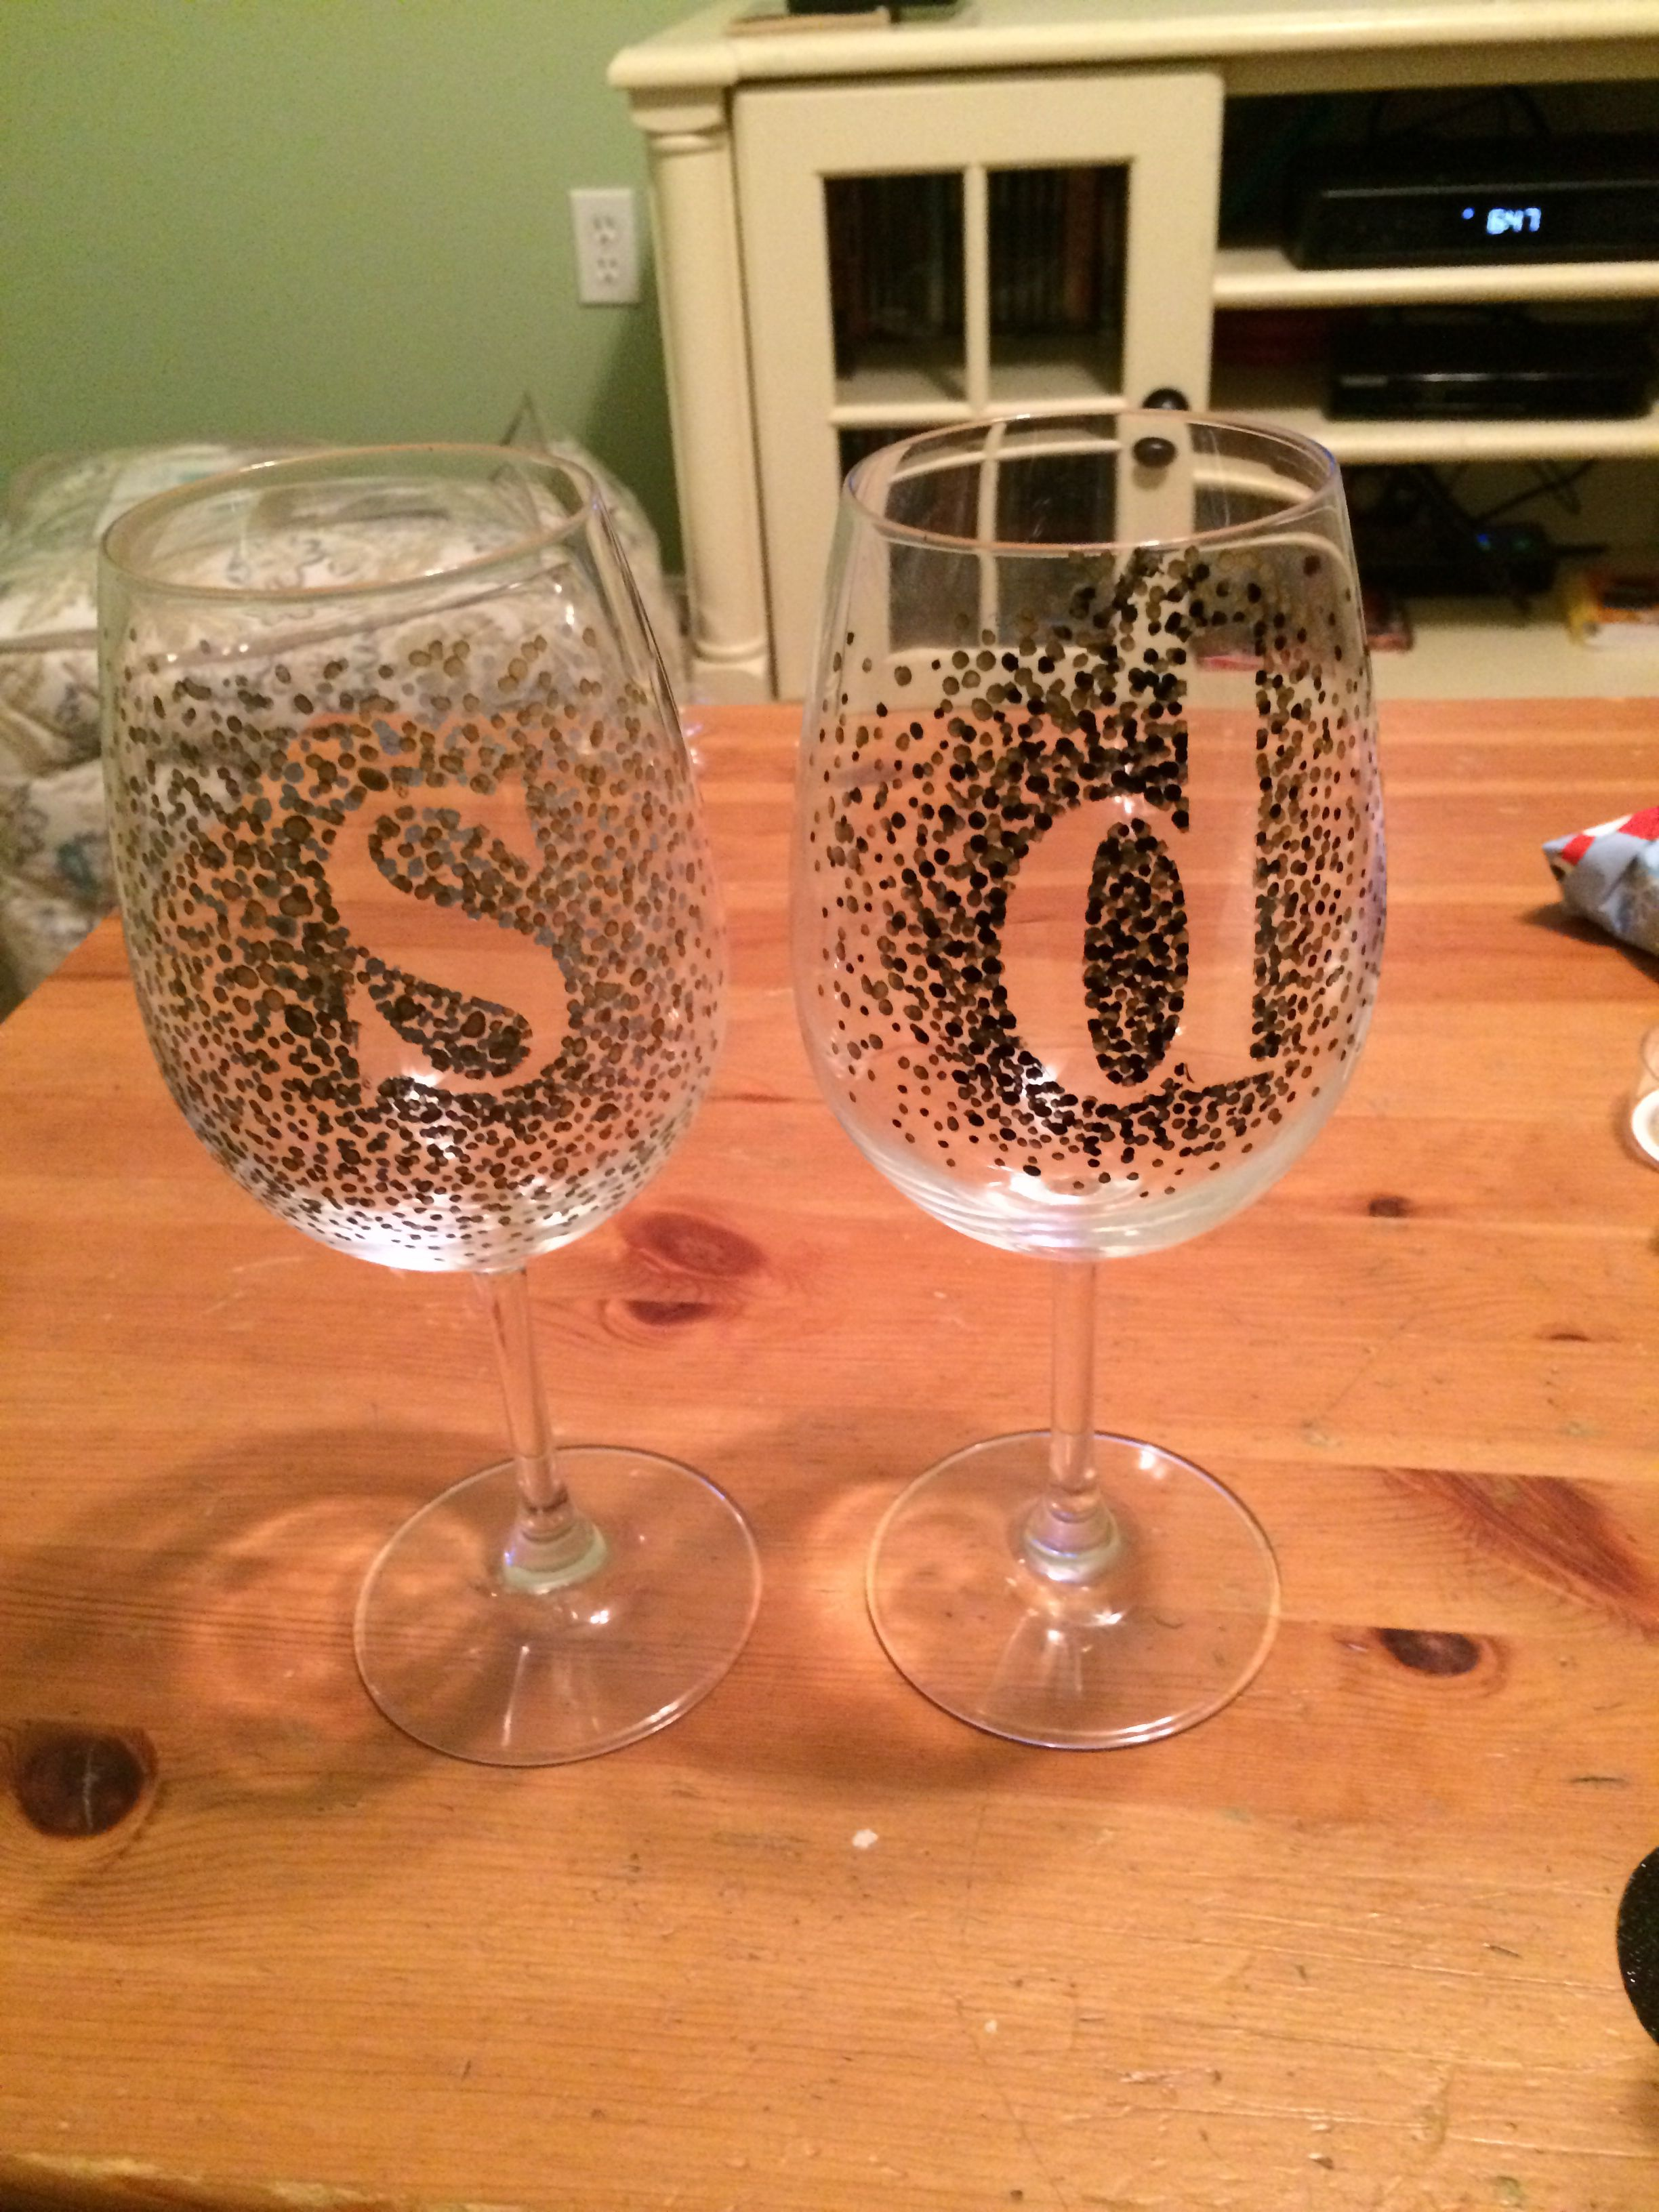 dot initial wine glasses sharpie paint pens scrapbook letters then cute in oven 350 for 30 mins